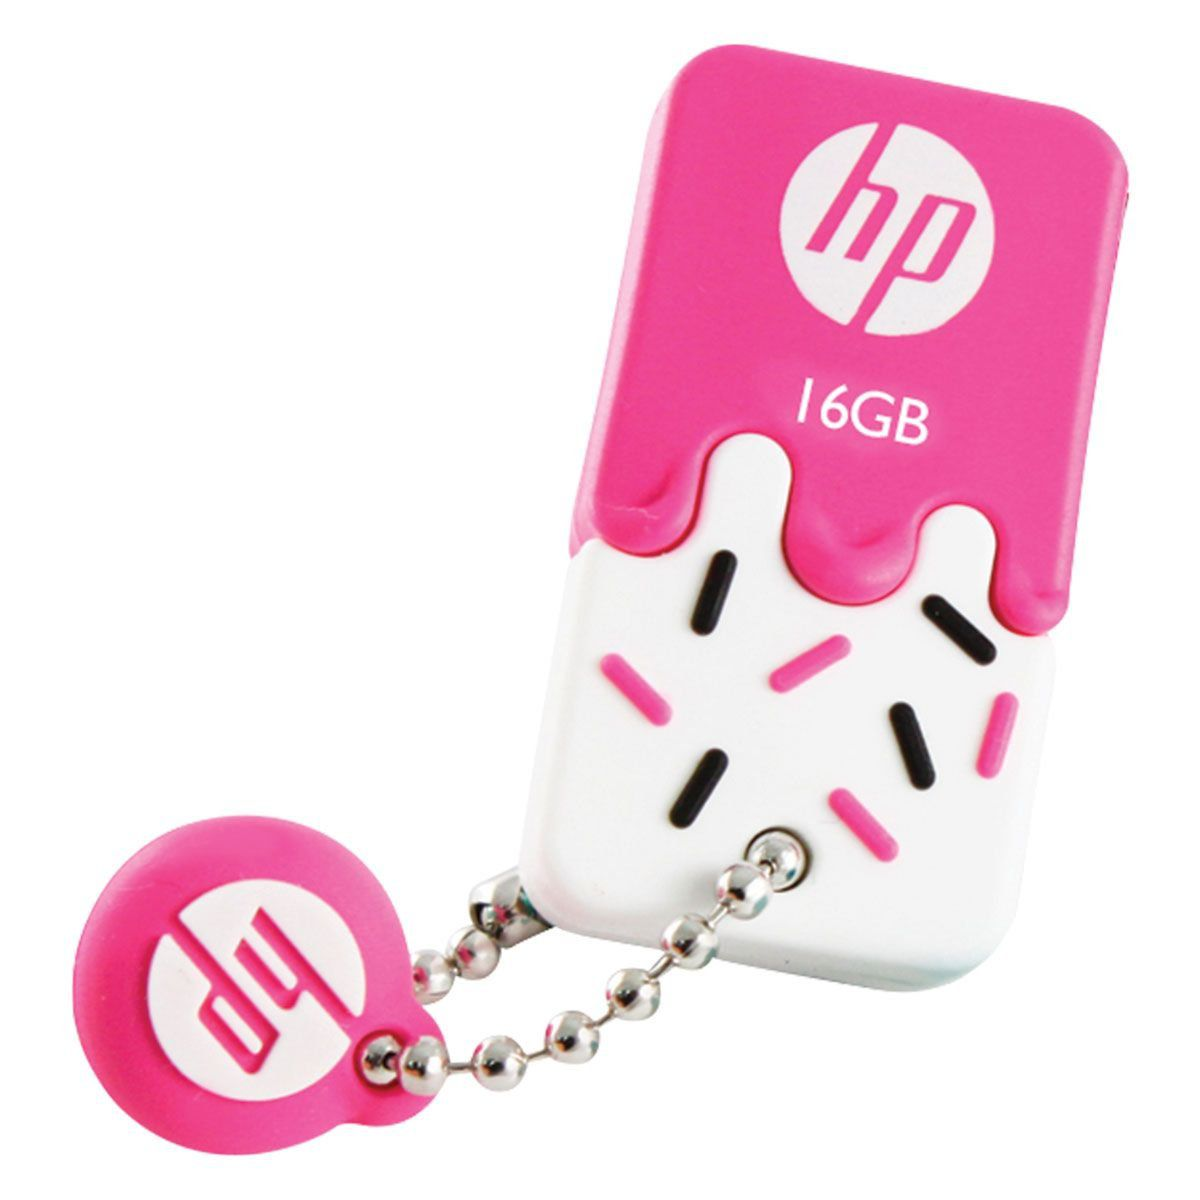 Pen Drive 16GB USB 2.0 Mini V178P Pink HPFD178P-16 - HP